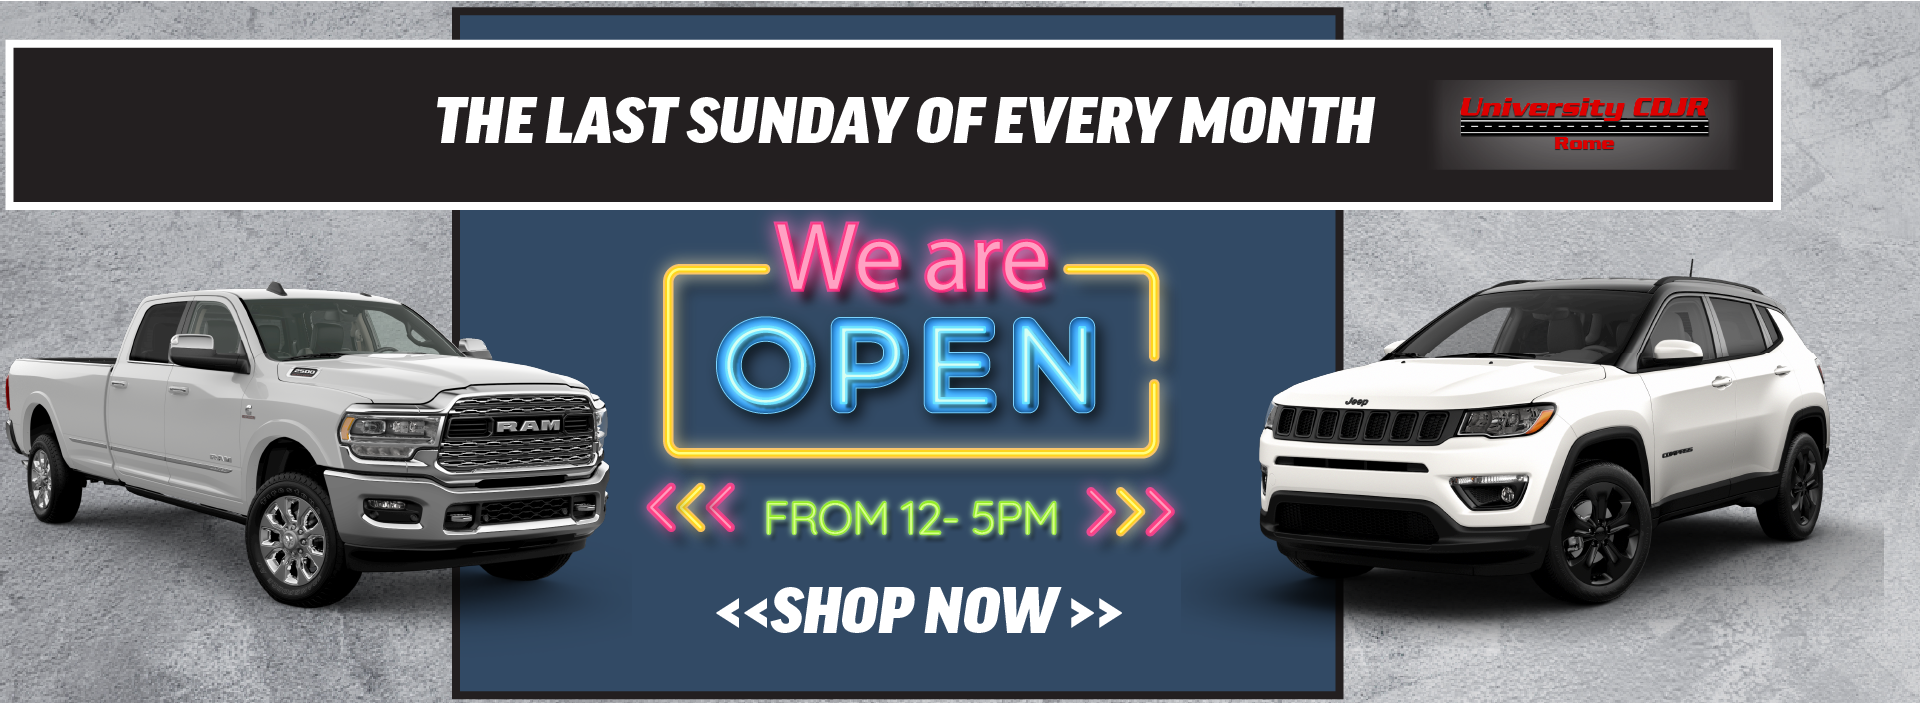 open last sunday